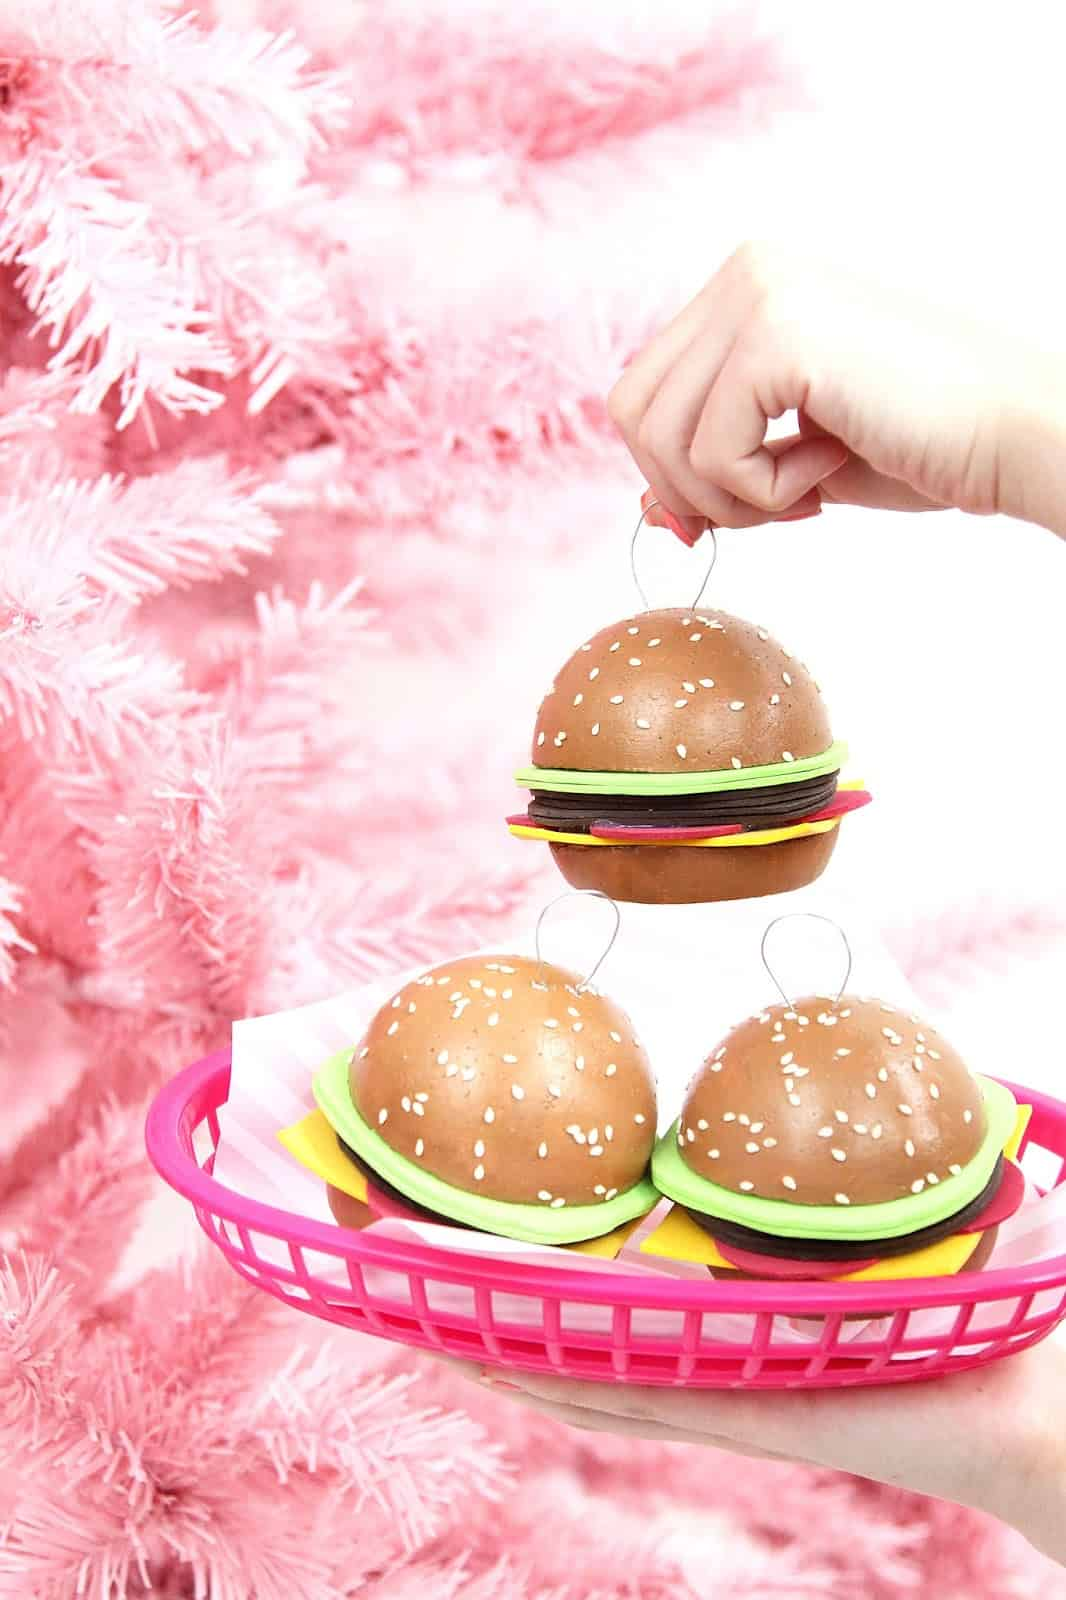 Hamburger Christmas ornaments